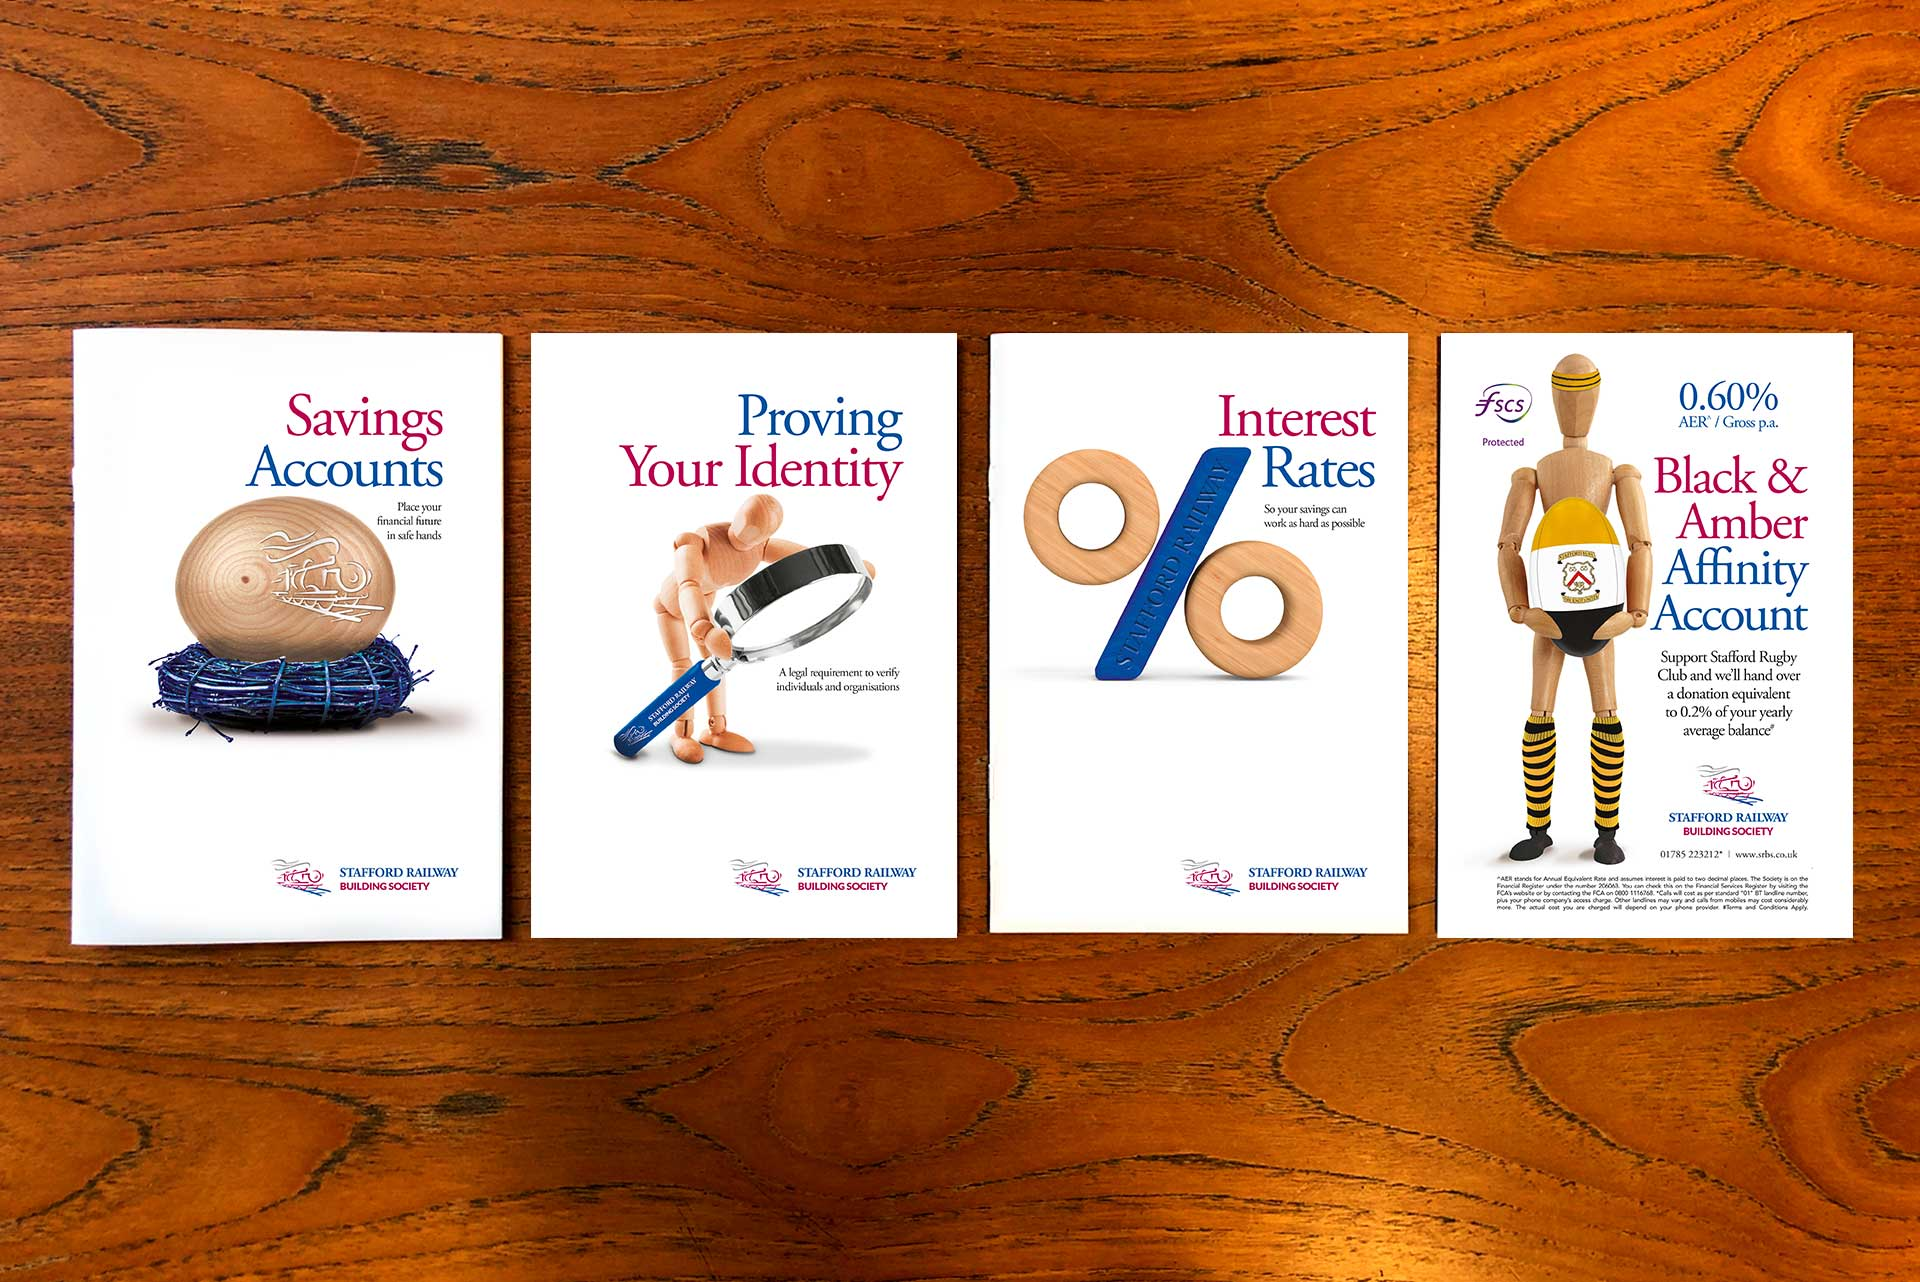 Product Posters for Stafford Railway Building Society